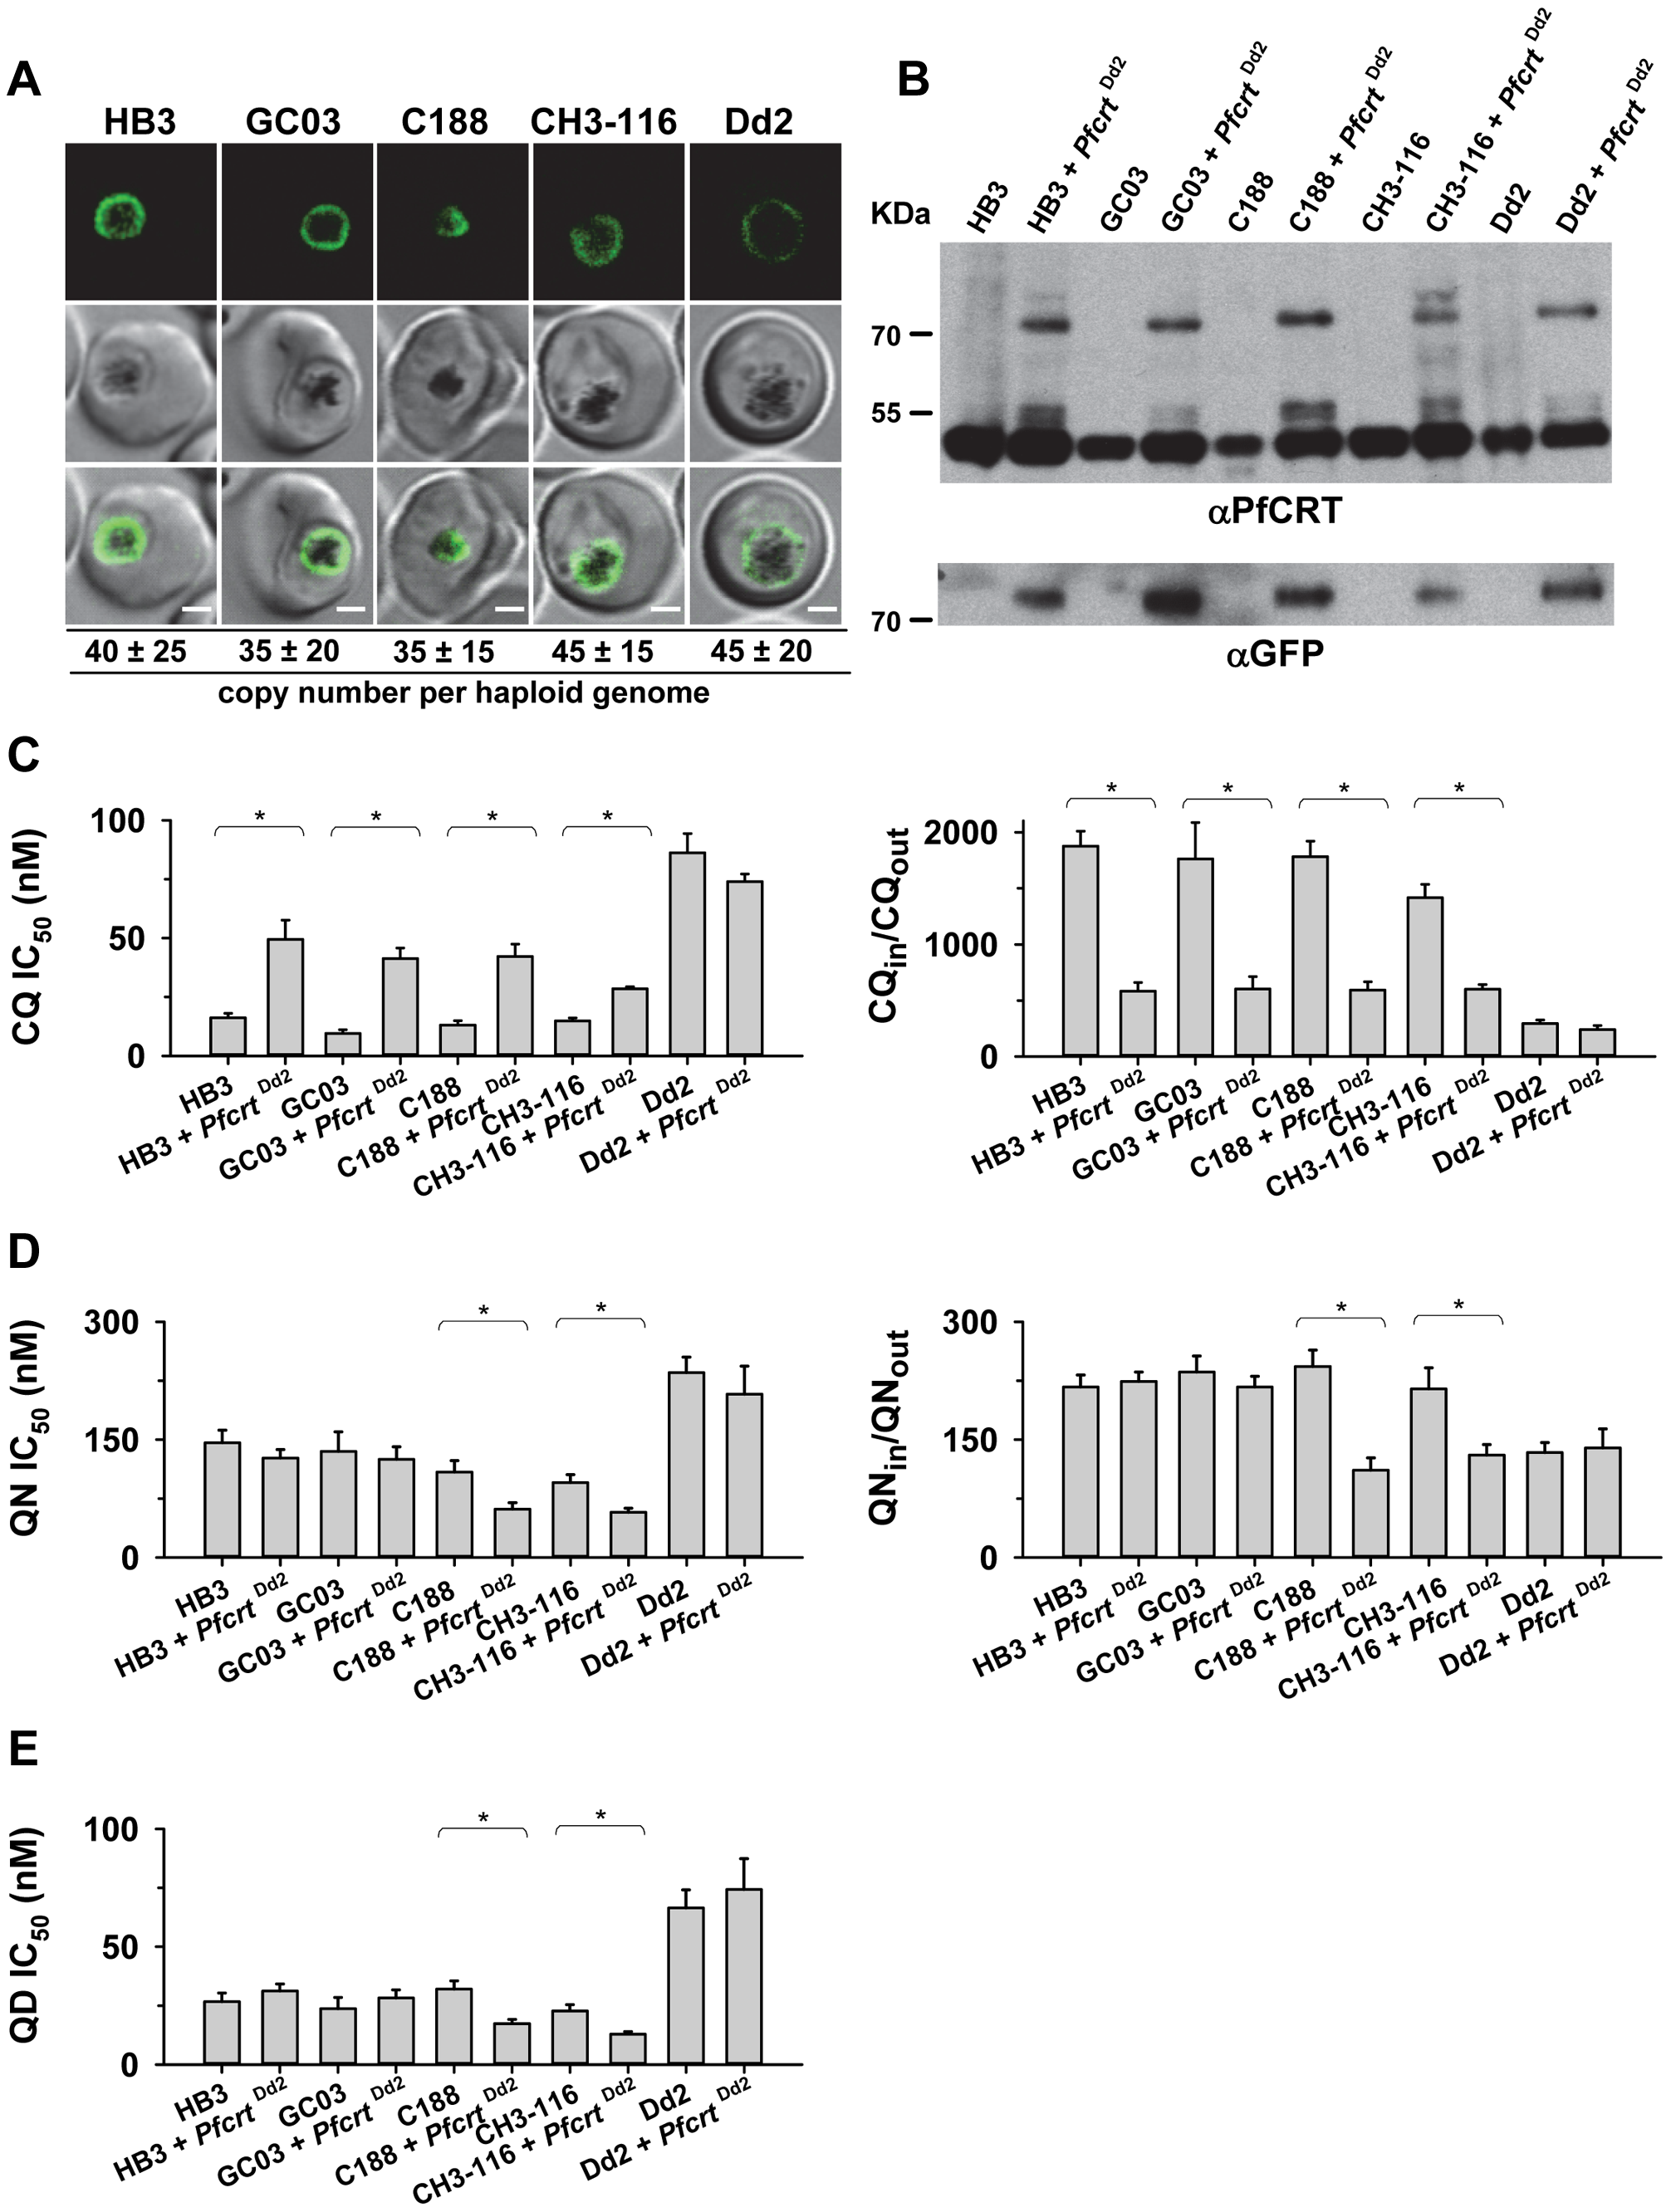 Functional association between the B5M12 locus and mutant PfCRT in conferring quinine and quinidine response variations.